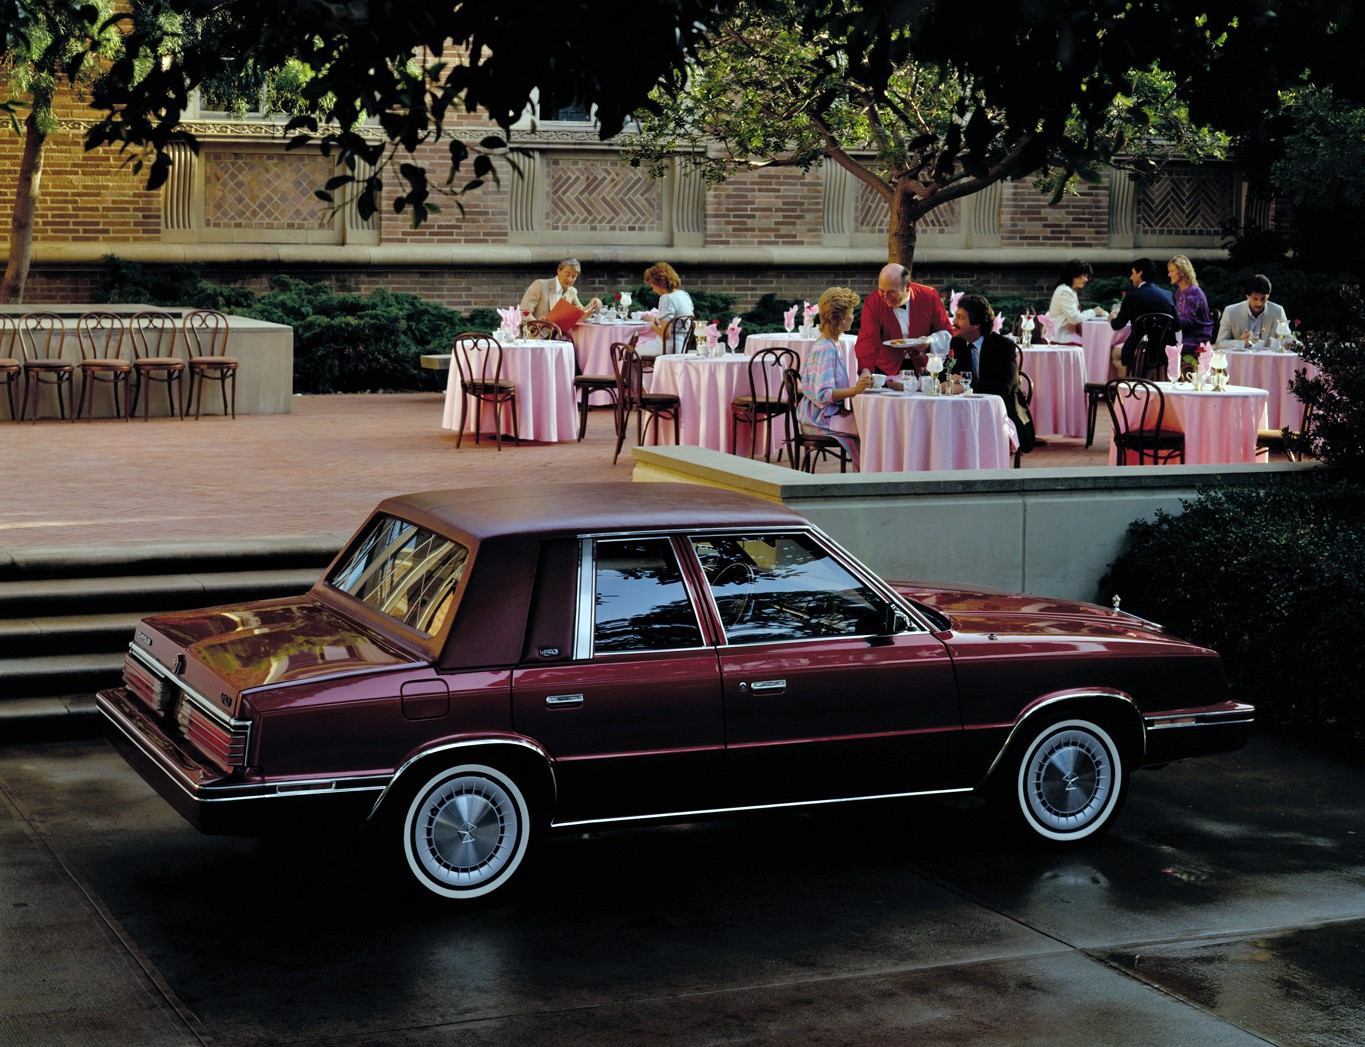 CHRYSLER LeBaron specs & photos - 1982, 1983, 1984, 1985, 1986, 1987, 1988 - autoevolution